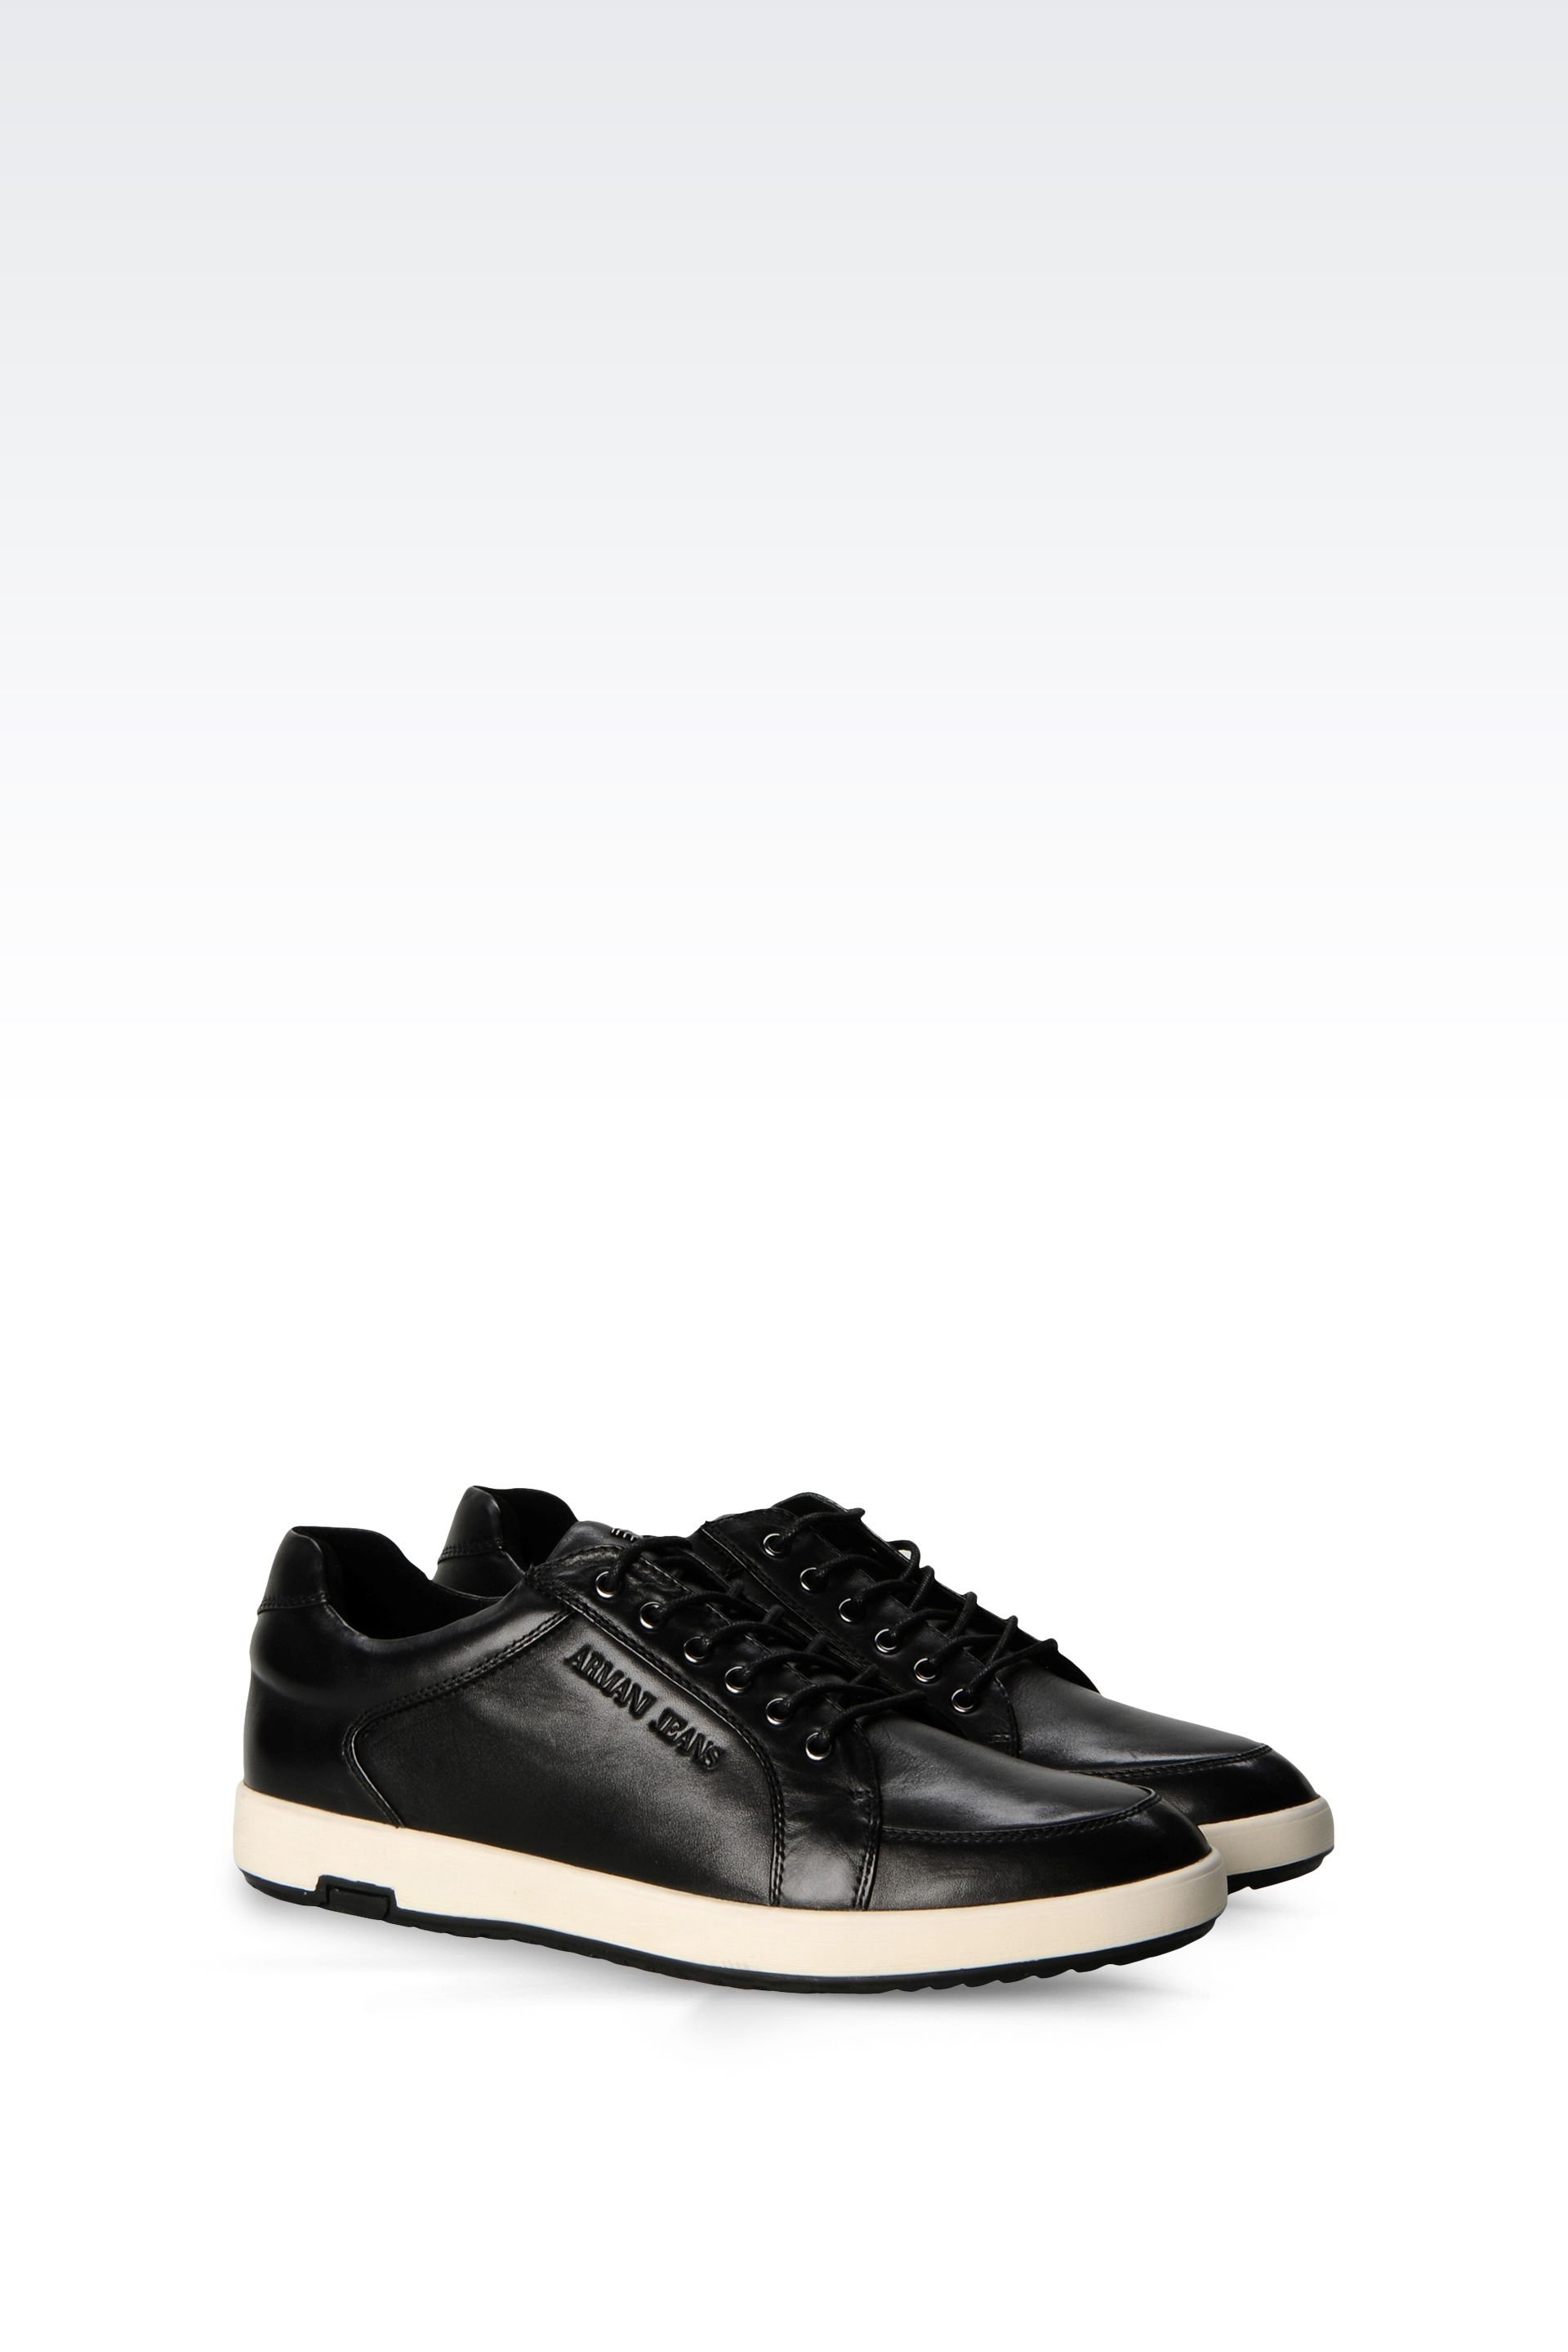 armani jeans sneaker in black for men lyst. Black Bedroom Furniture Sets. Home Design Ideas